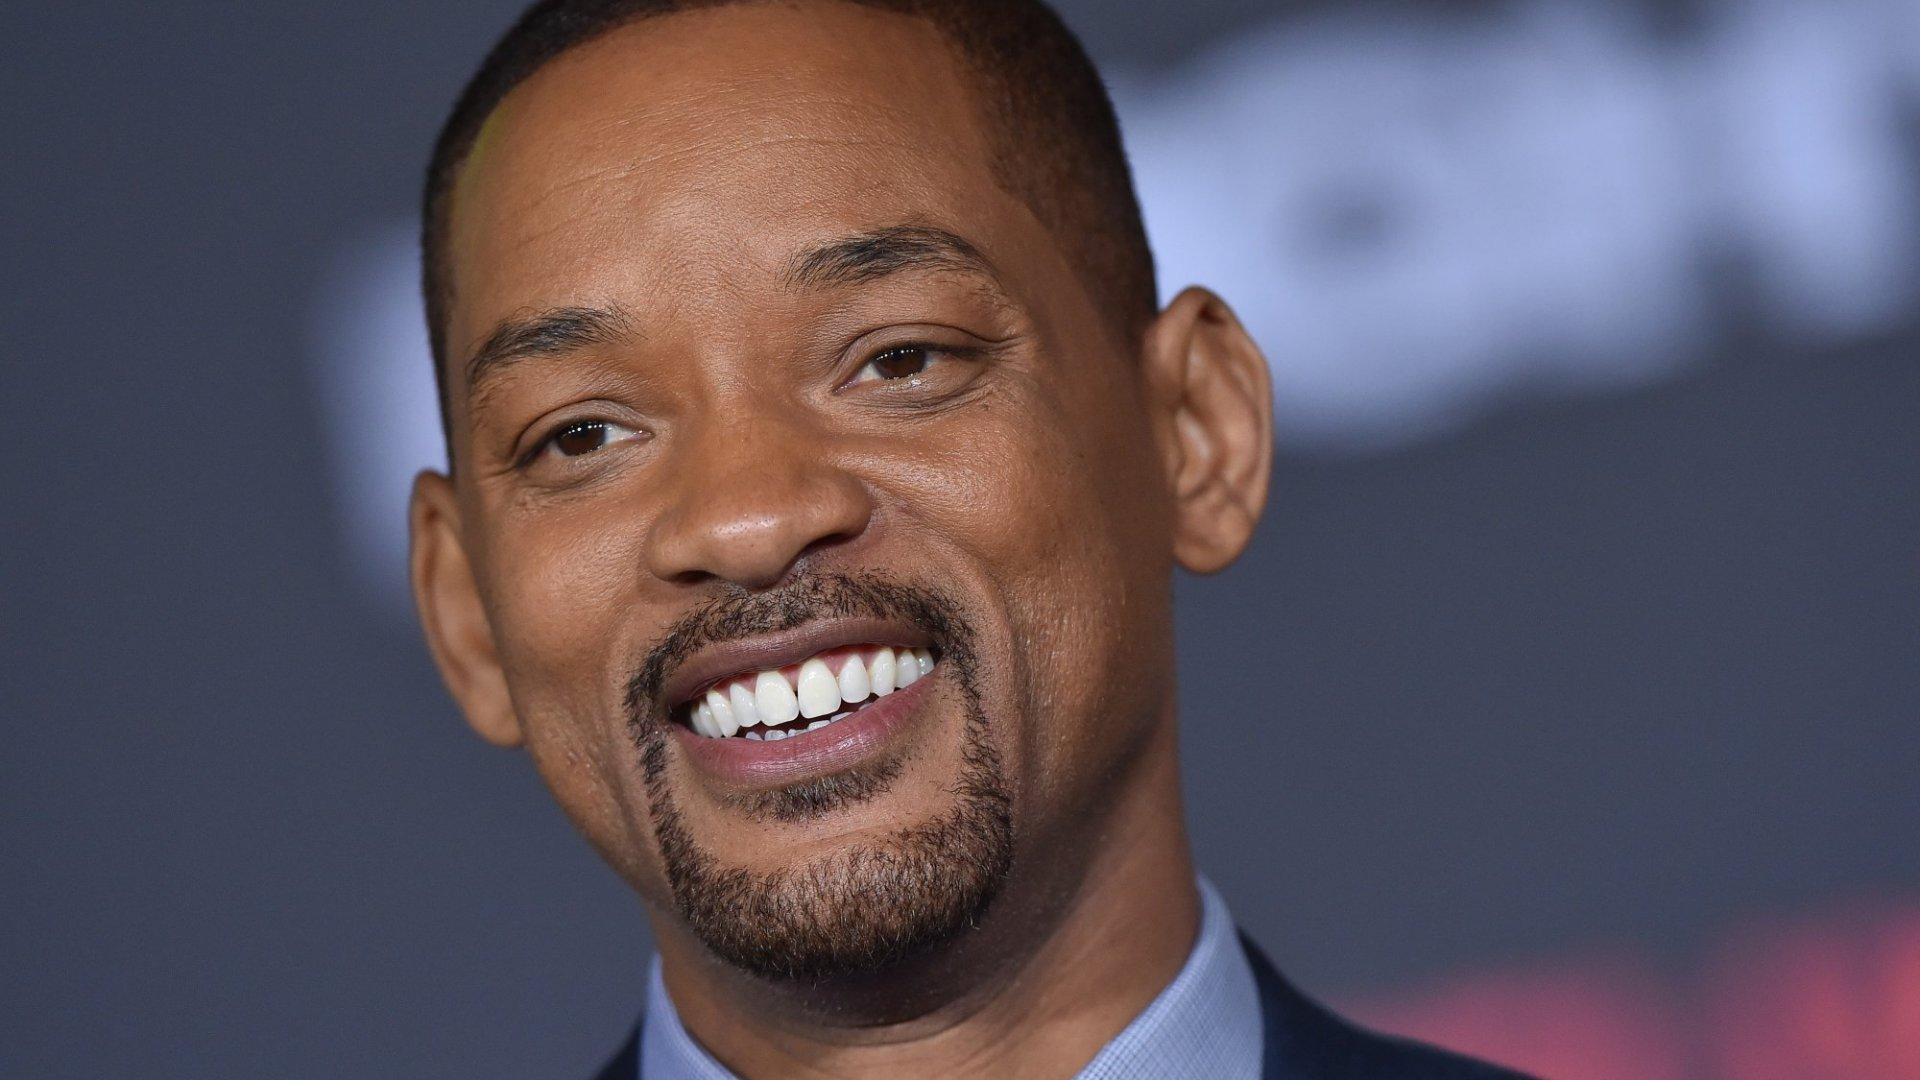 With This 1-Minute Video, Will Smith Describes the 1 Thing That Separates People Who Achieve From Those Who Only Dream